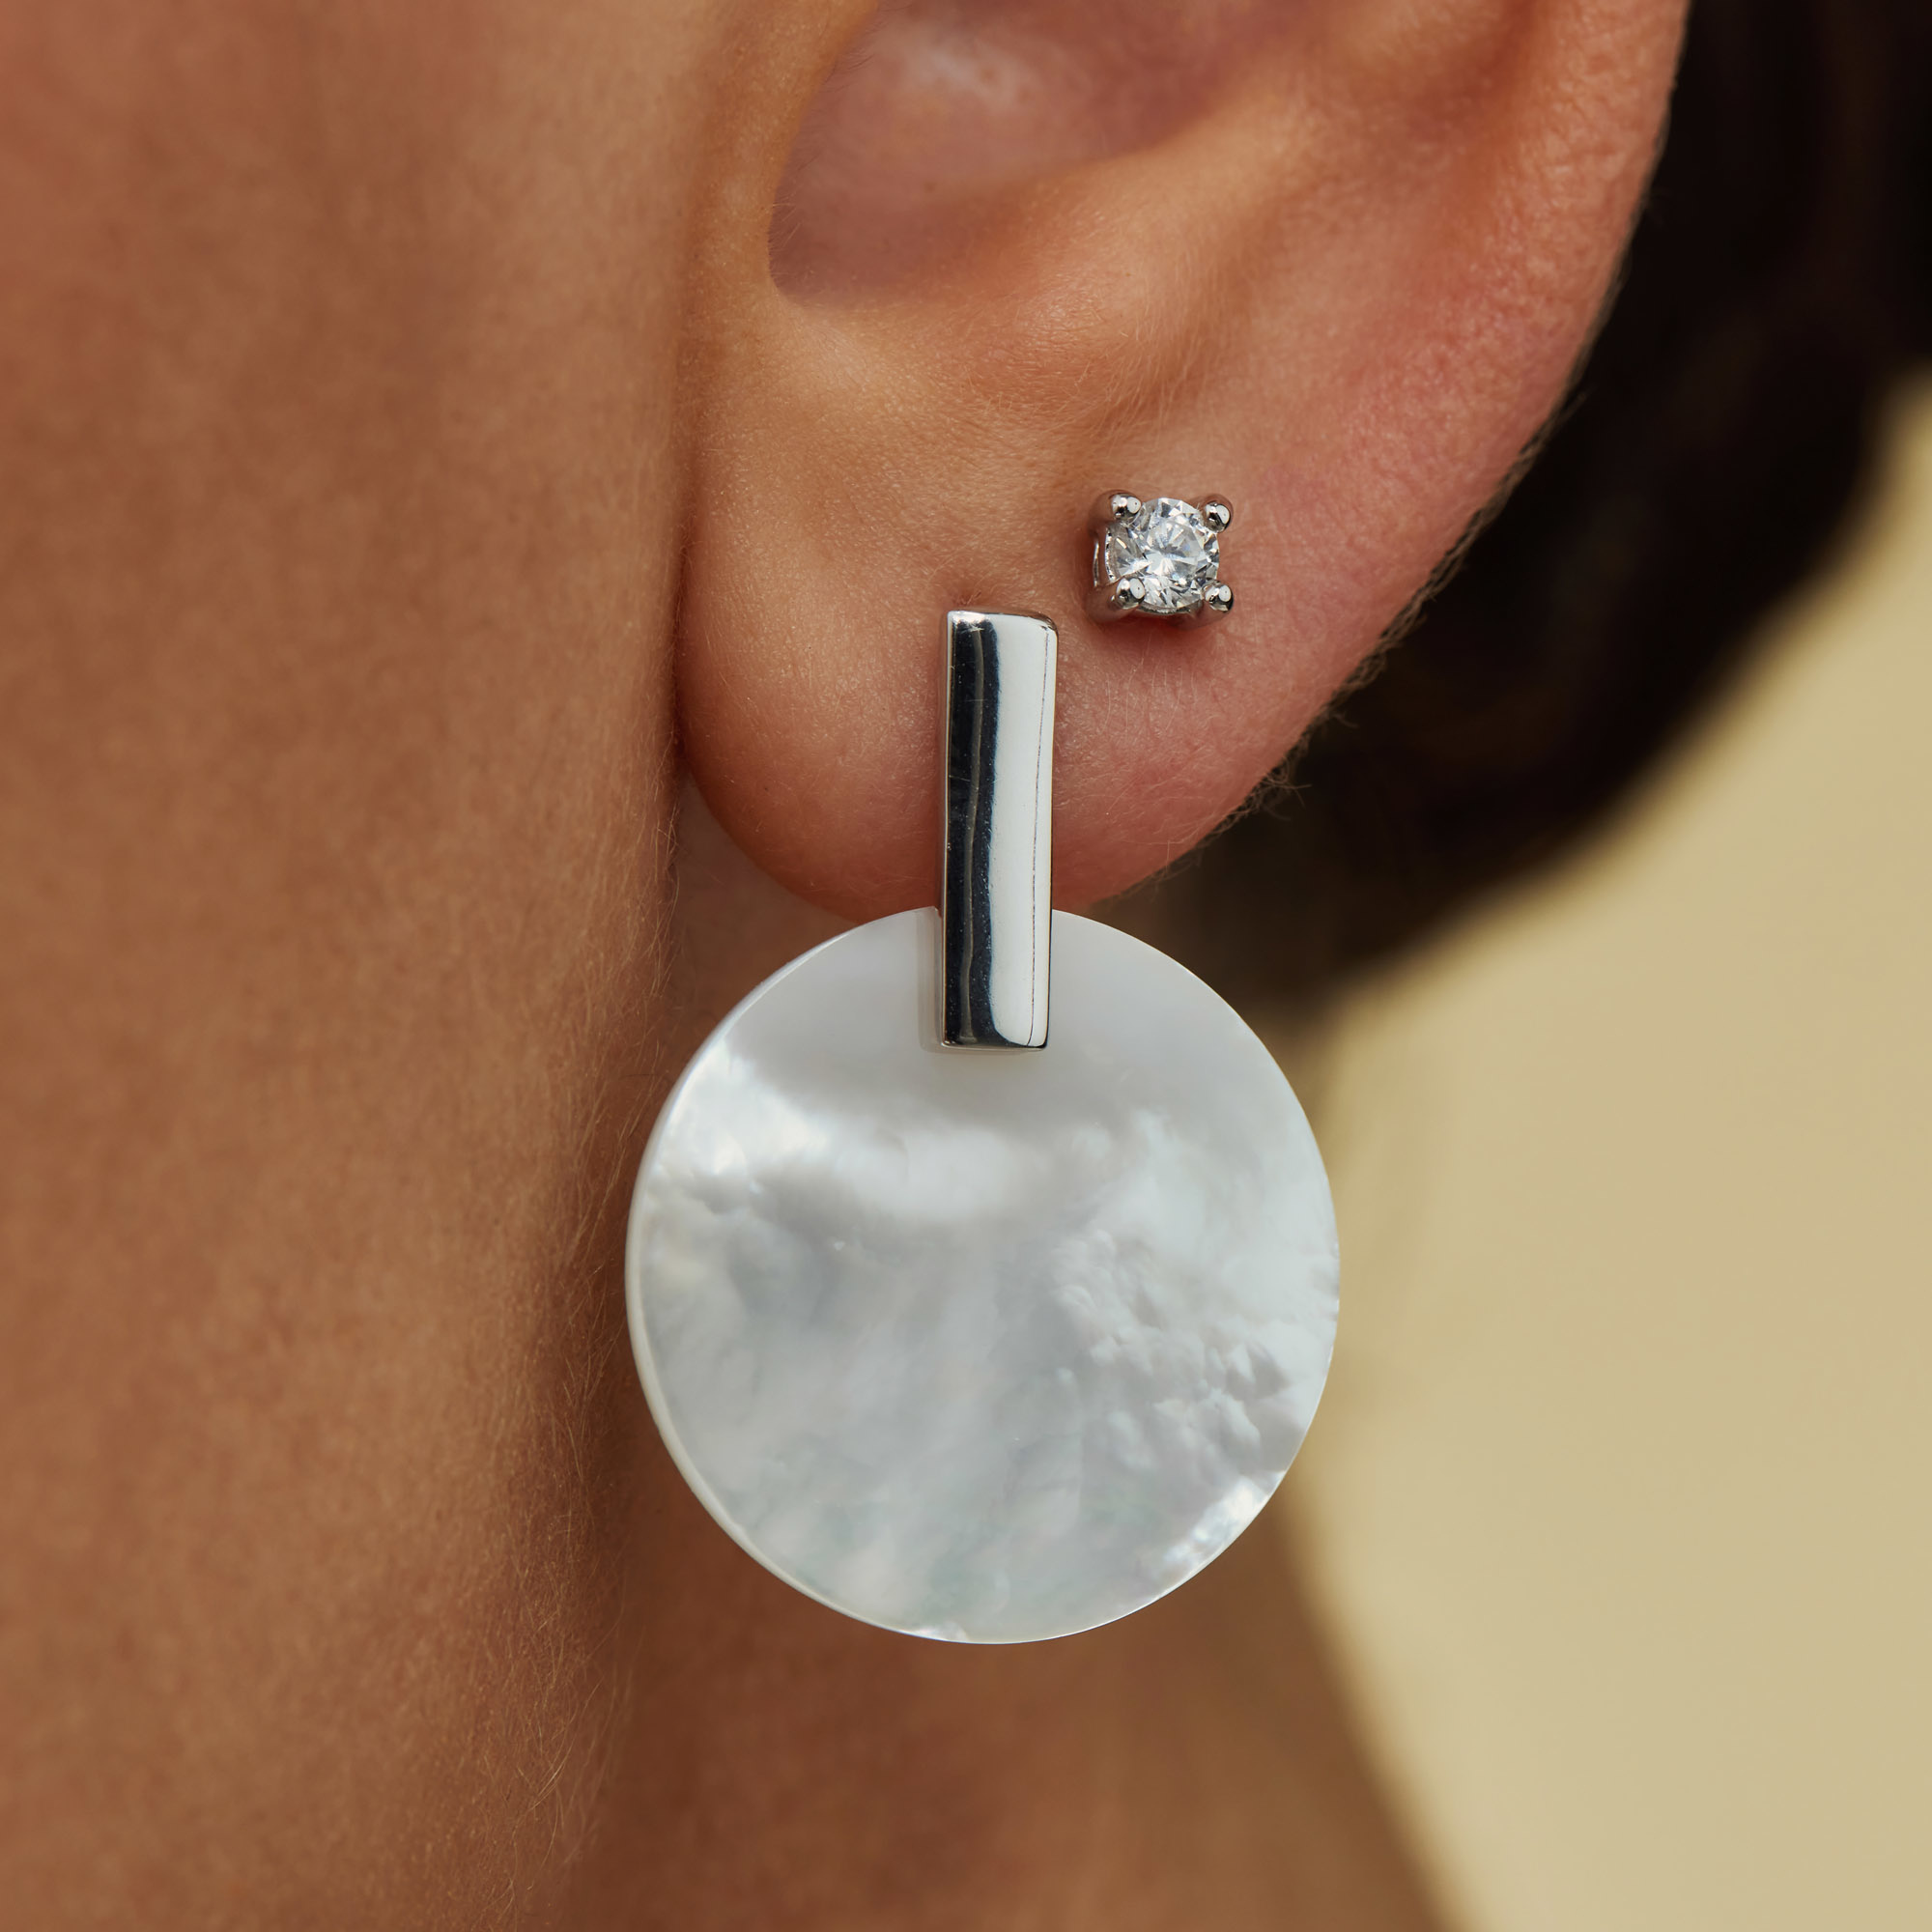 Parte di Me Brioso Cortona Donna 925 sterling silver drop earrings with mother of pearl